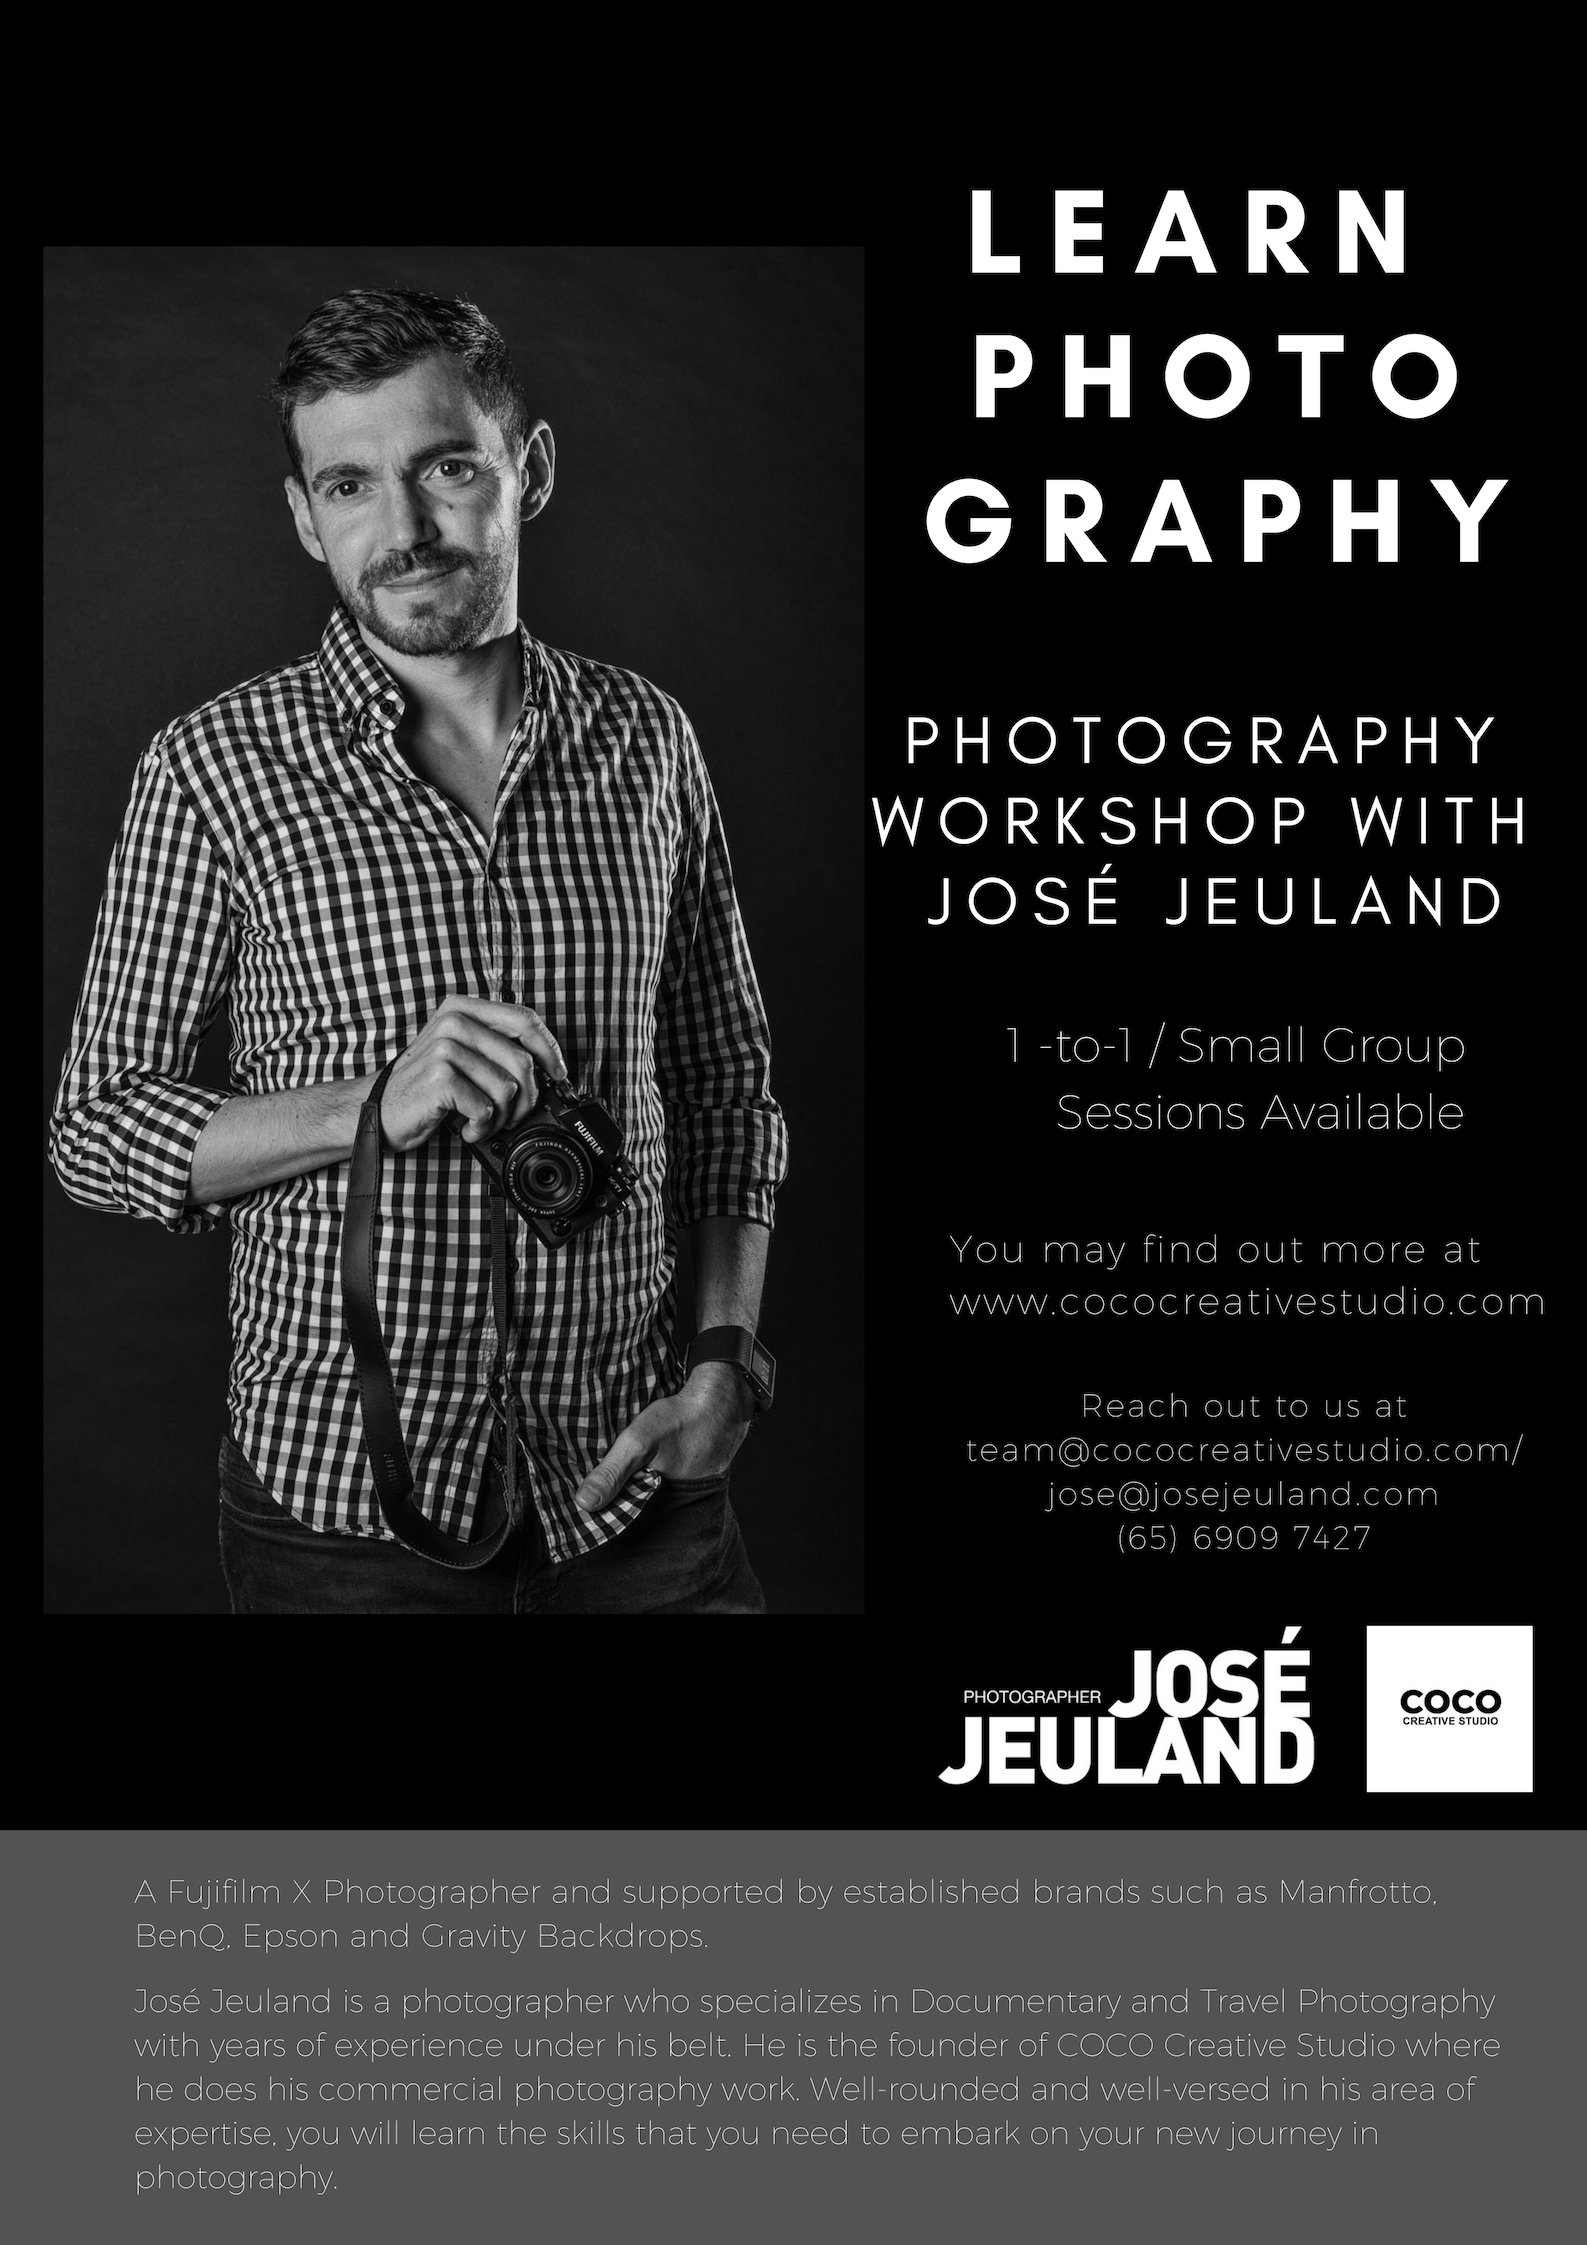 Jose Jeuland Photography Workshop singapore photographer photowalk asia fujifilm manfrotto